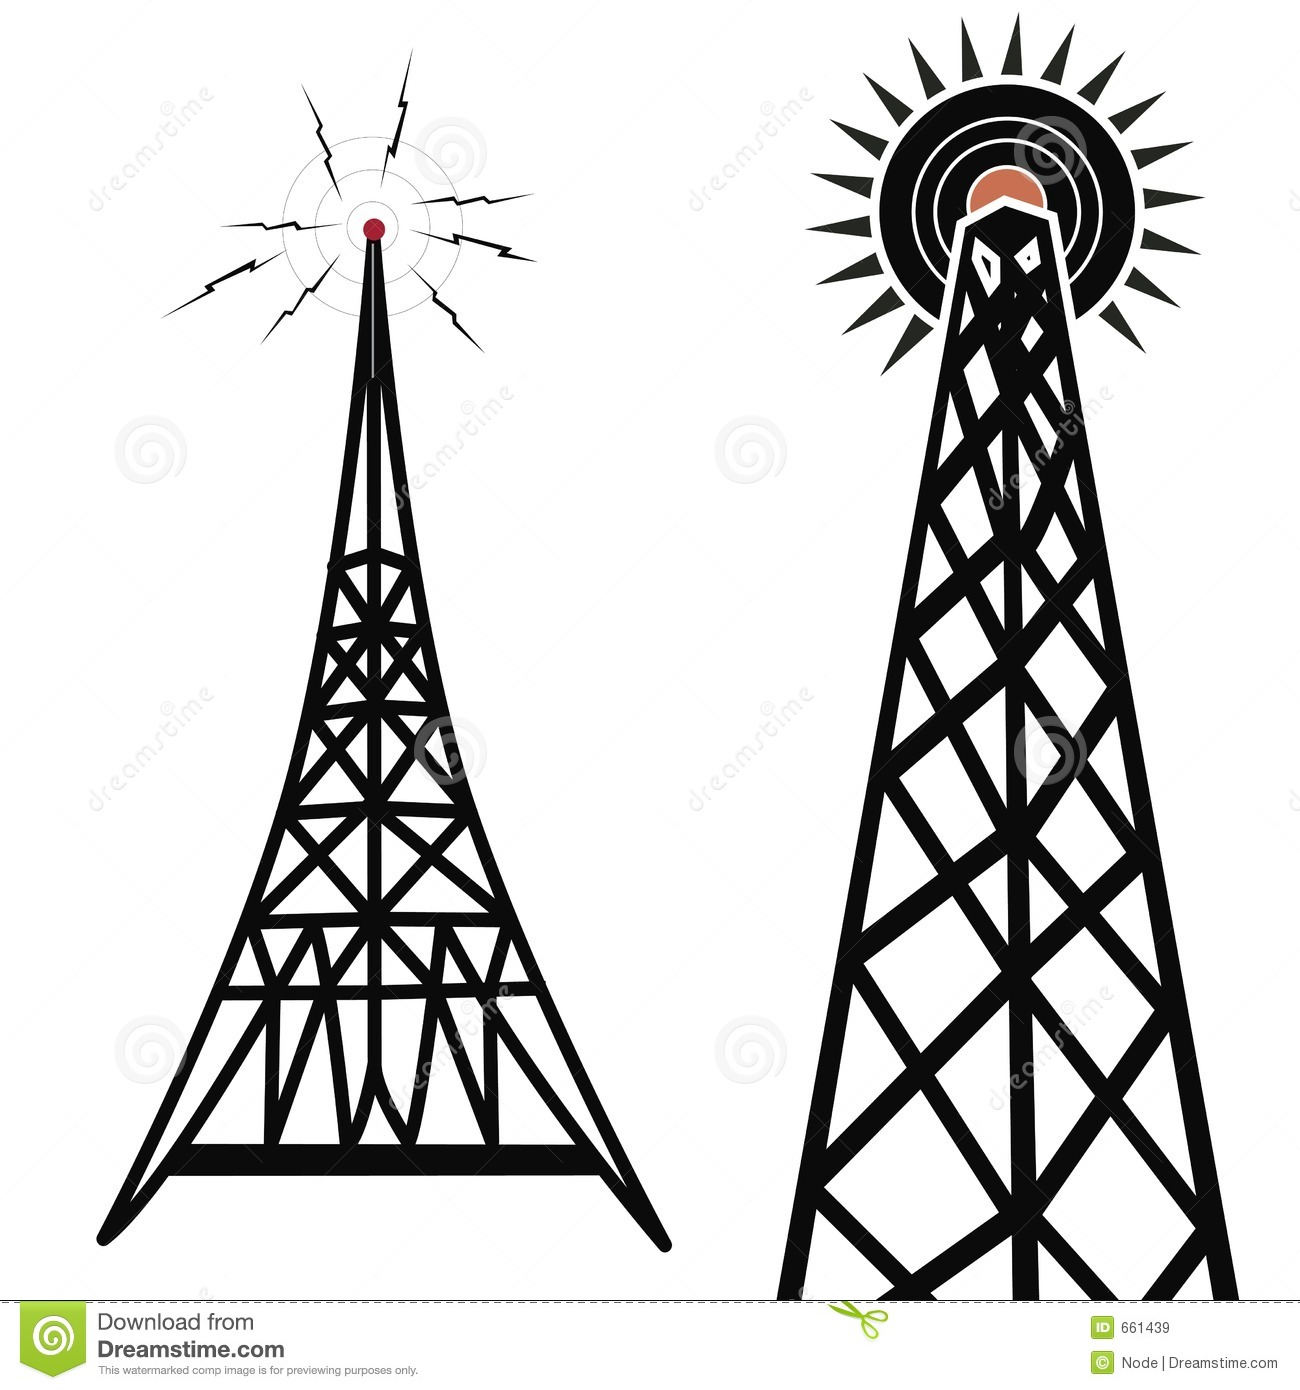 Radio Towers Royalty Free Stock Images - Image: 661439